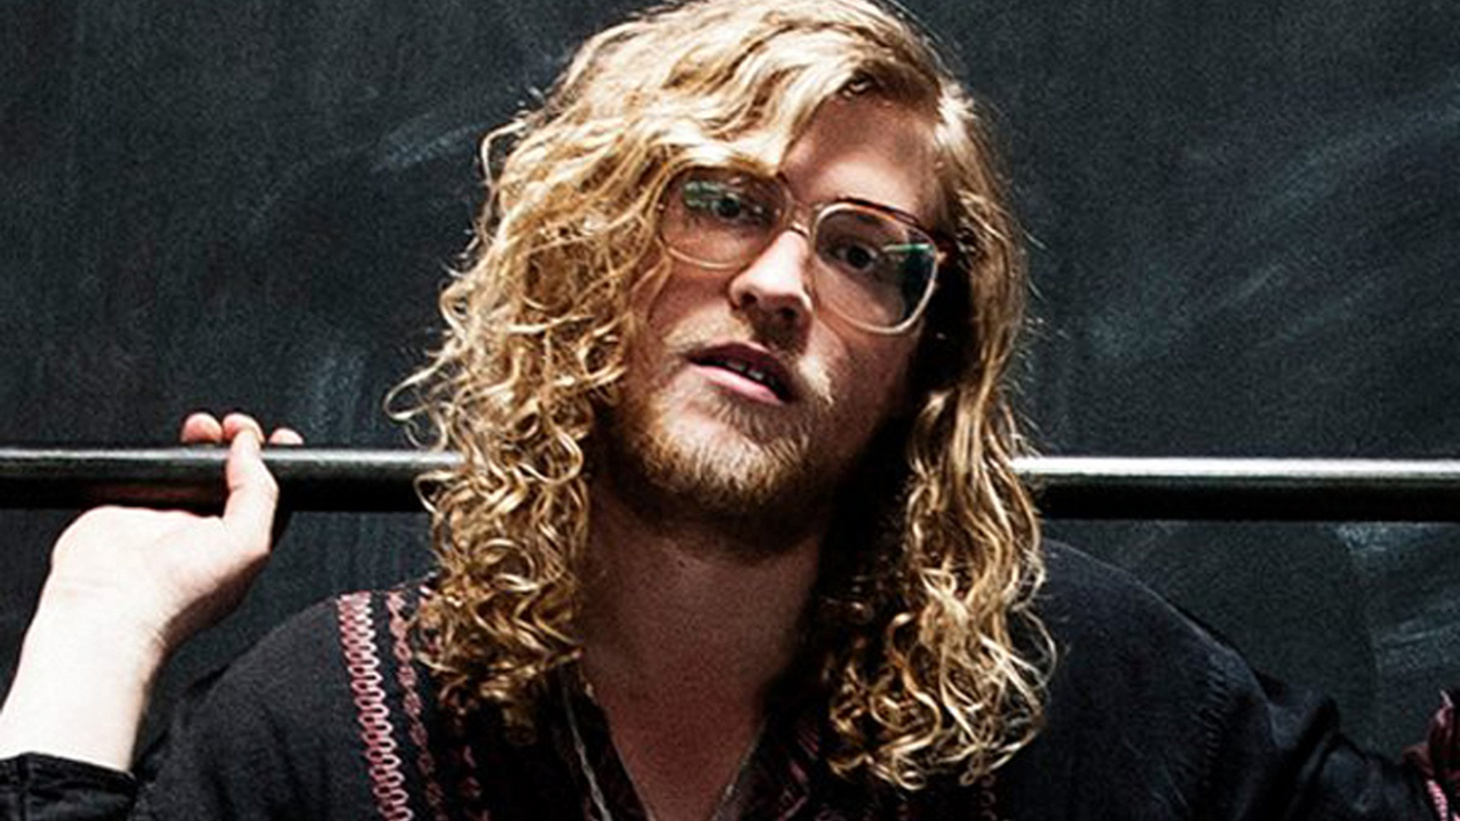 Allen Stone is a son of a preacher and self-described hippie from rural Washington whose love for soul music led him to become a singer/songwriter.